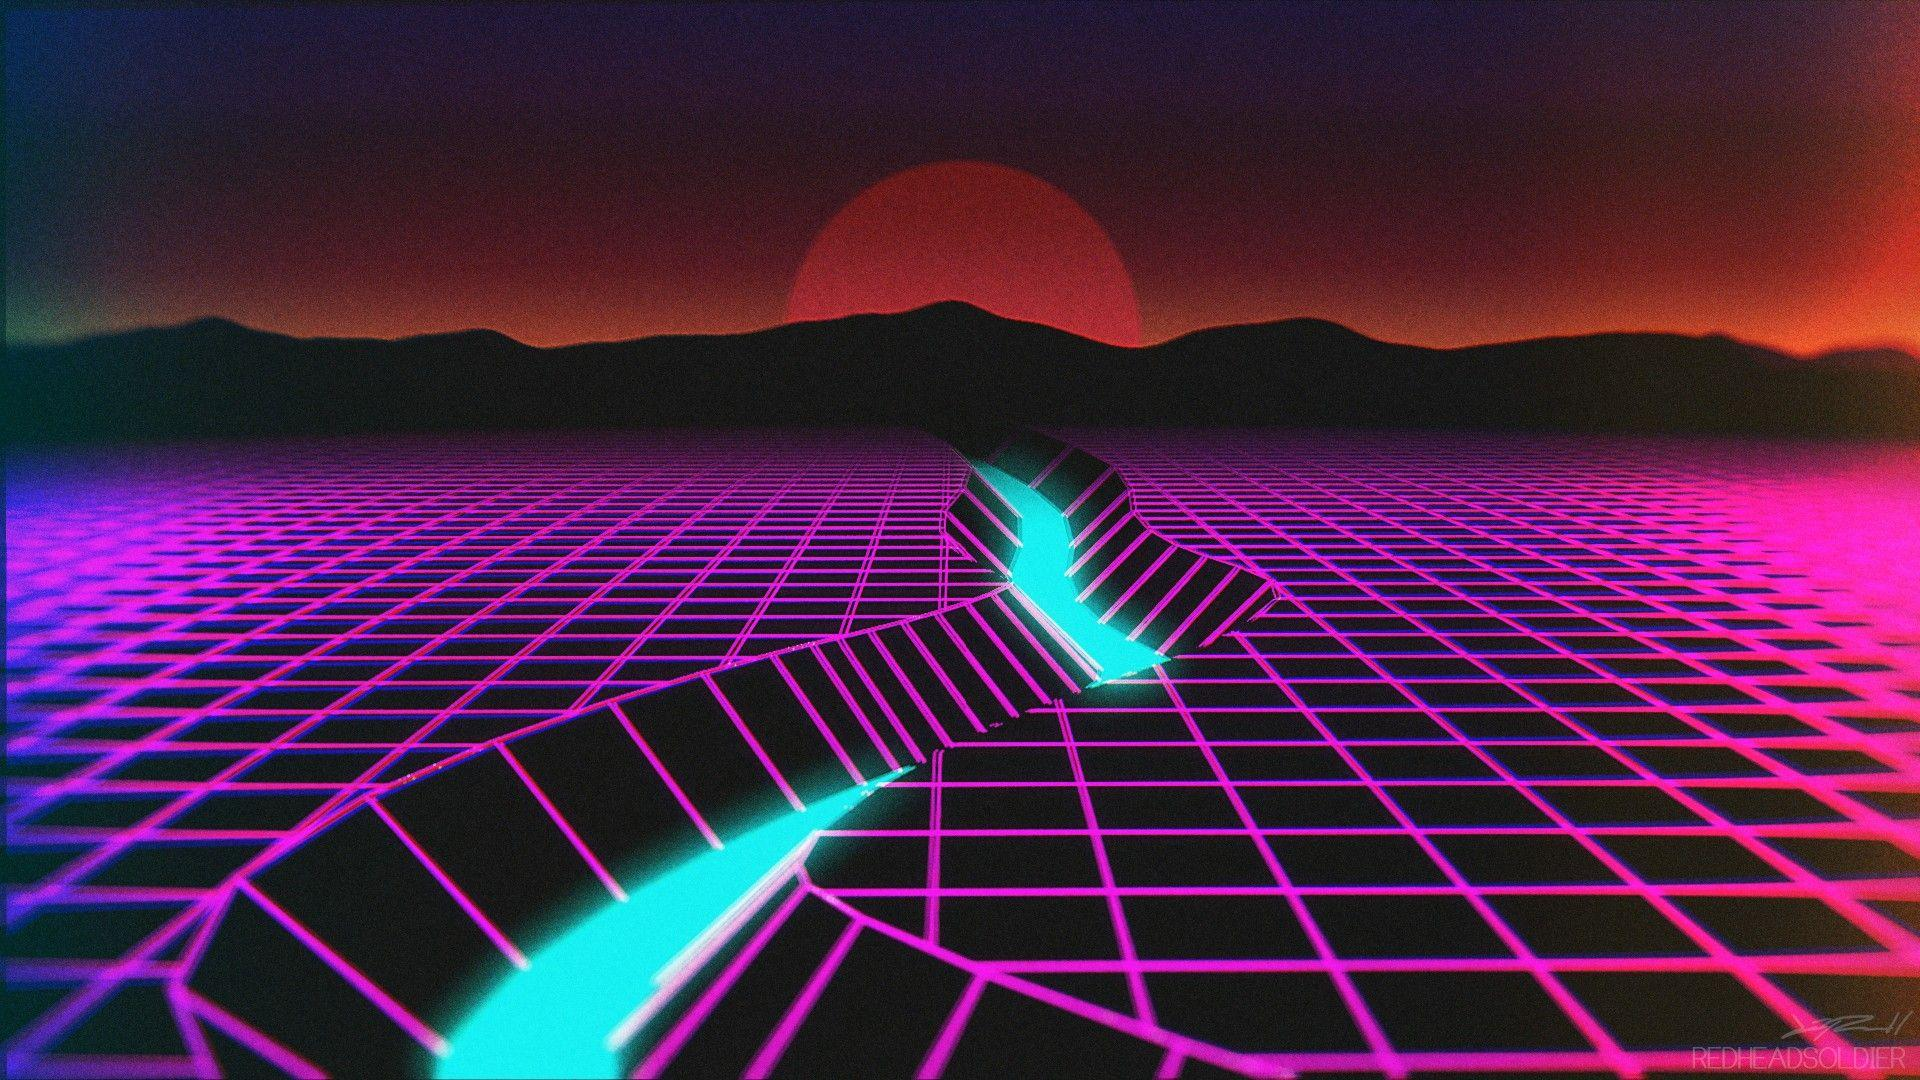 Wallpapers : neon, reflection, horizon, atmosphere, New Retro Wave